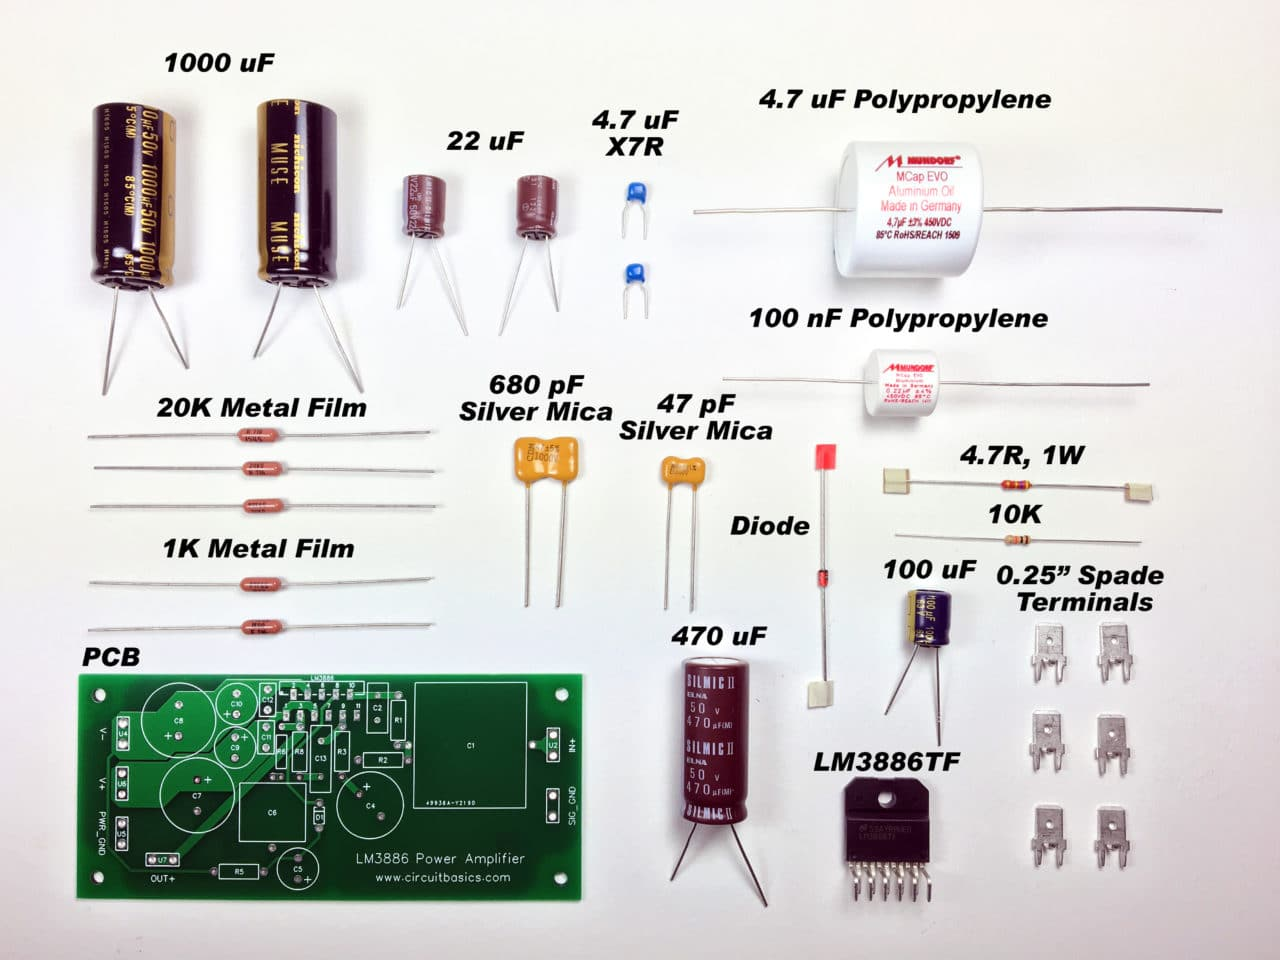 A Complete Guide To Design And Build Hi Fi Lm3886 Amplifier Current Transformer Software Electronic Circuits The Total Cost Came About 118 For Both Channels Not Including Chassis Power Supply Wiring Parts You Can It Lot Less With Cheaper